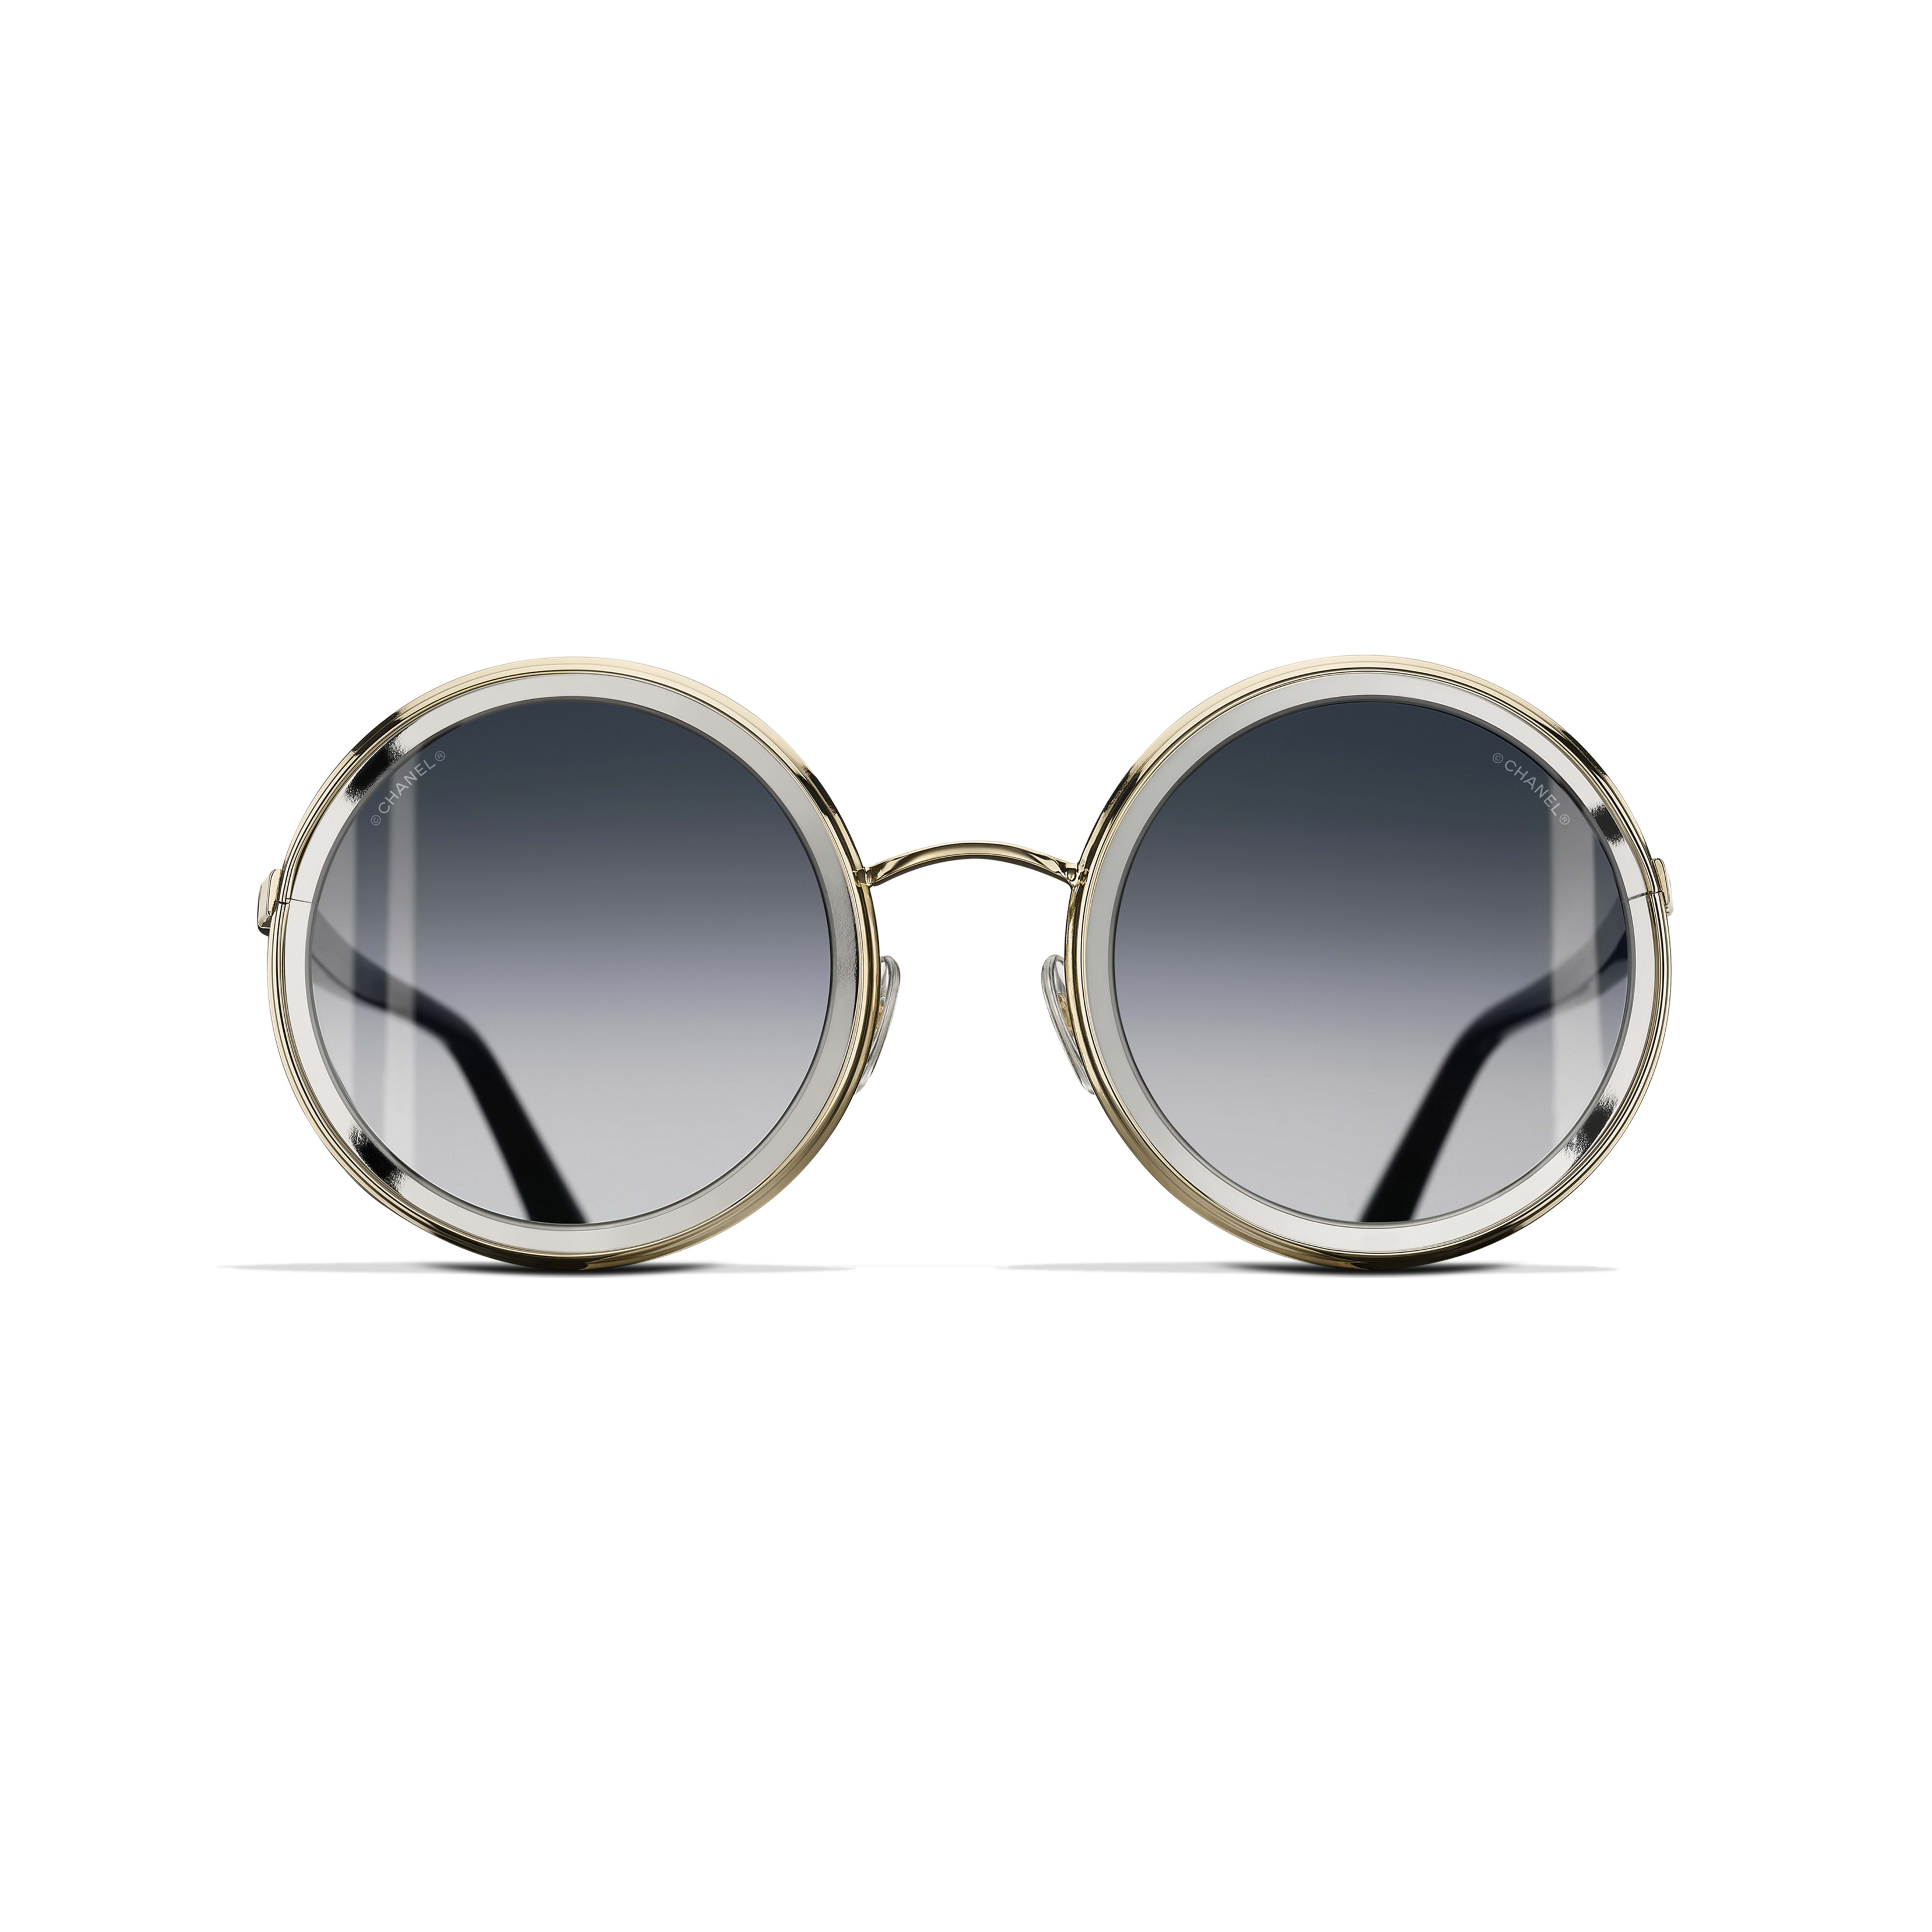 Round Sunglasses Metal Gold -                                                    view 2 - see full sized version